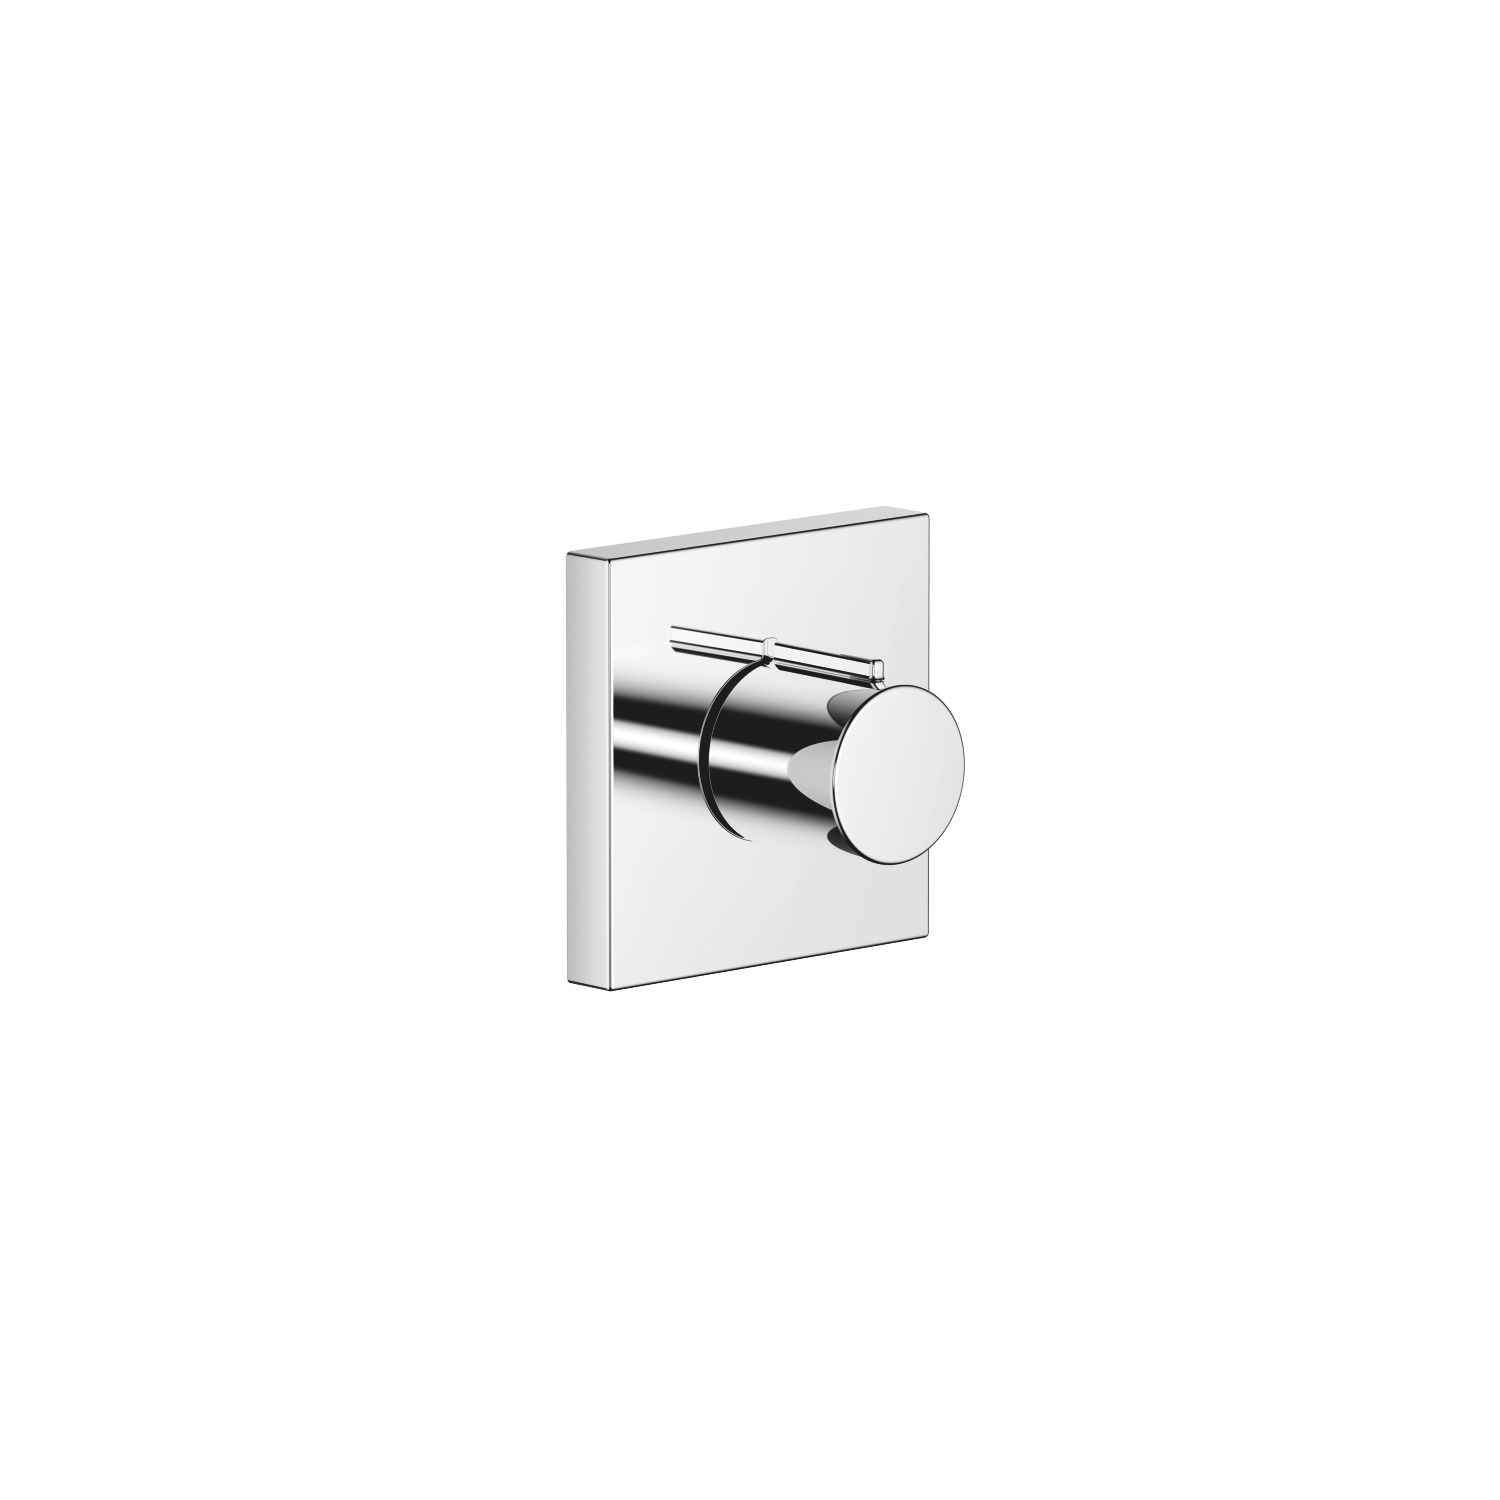 "Wall valve anti-clockwise closing 3/4"" - polished chrome - 36 608 980-00"